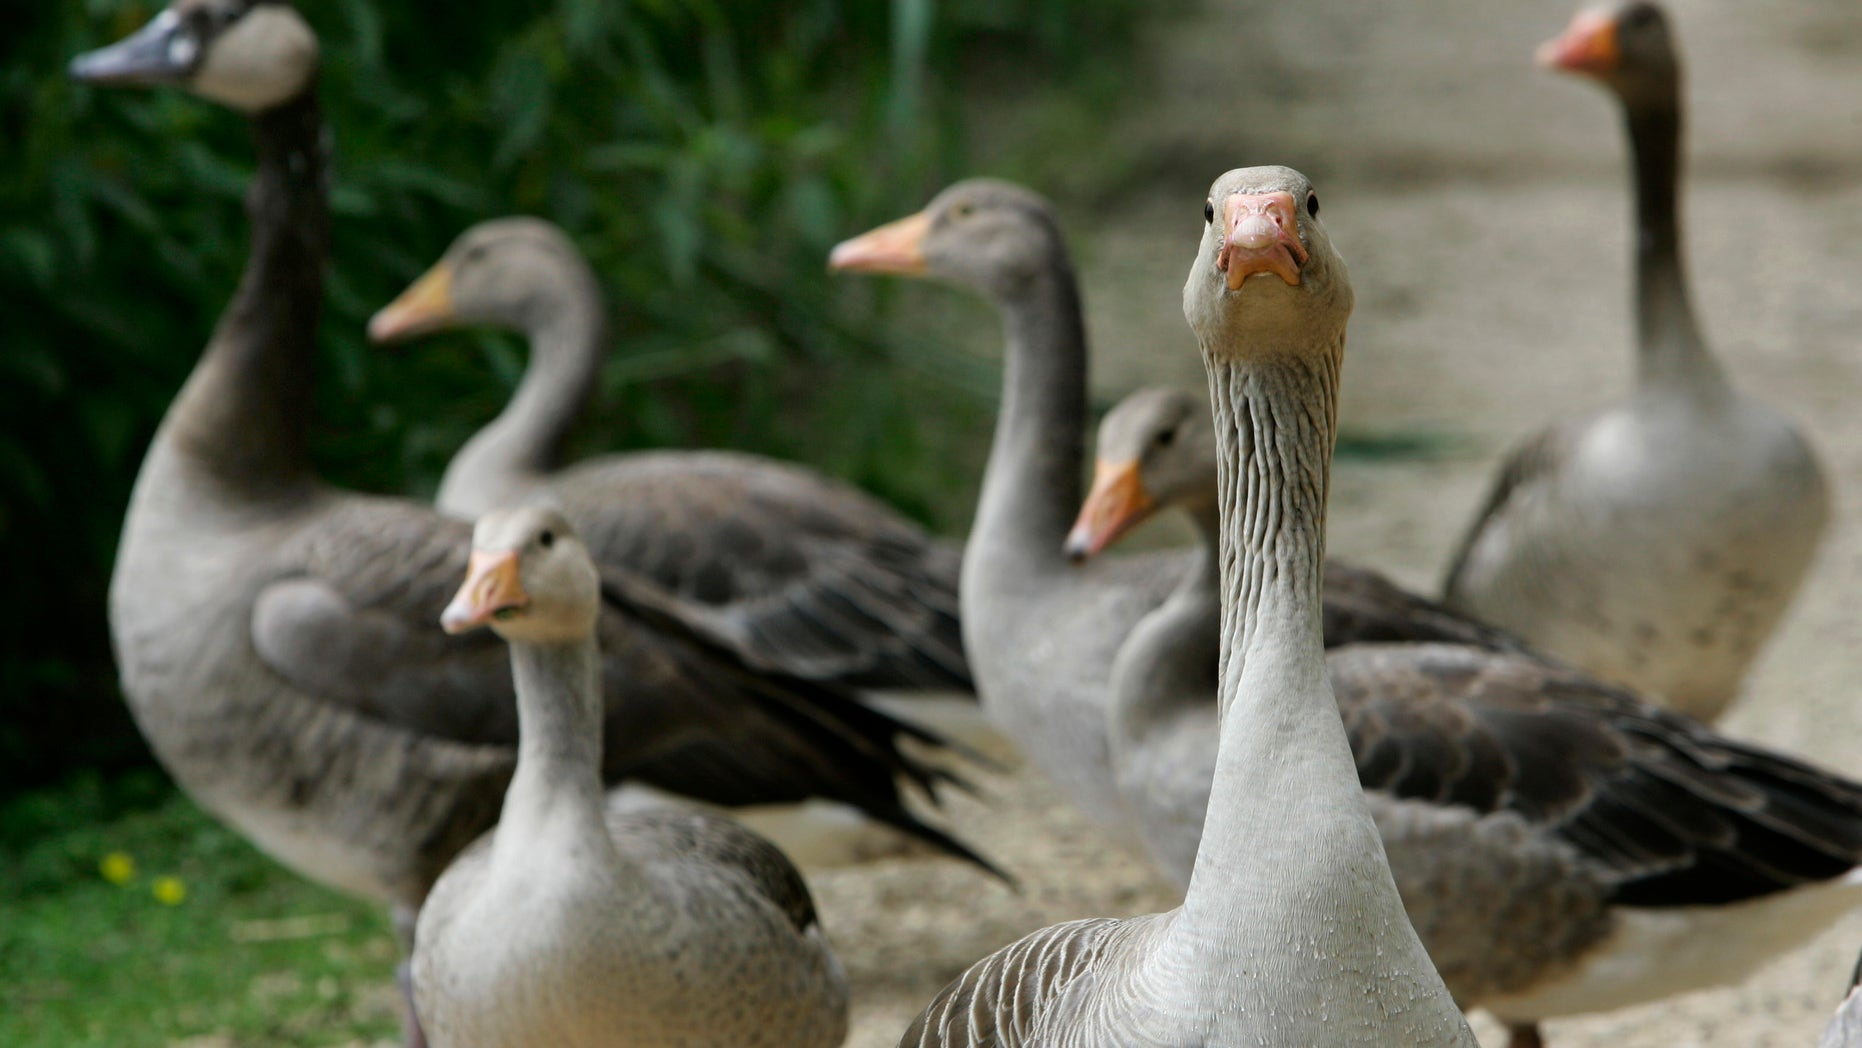 Geese are pictured next to the lake Woehrder in Nuremberg June 24, 2007. The deadly strain of the bird flu virus has resurfaced in Germany in the bodies of at least three dead birds found in the state of Bavaria, Germany's first confirmed cases this year, officials said on Sunday.